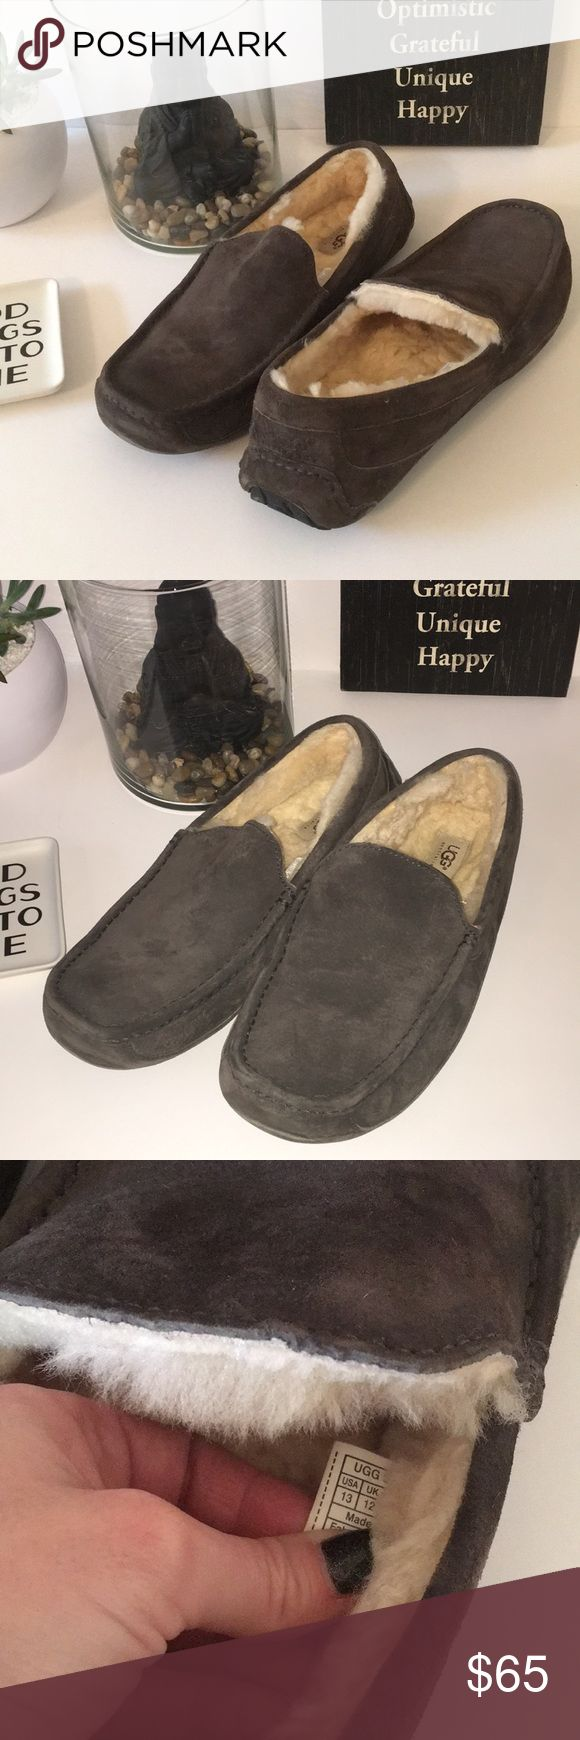 ✨Mens Ugg Slippers Reposhing these bought for a friend and not the right size. Like new condition for half the price. These are a must have slipper so warm! Ascot suede style UGG Shoes